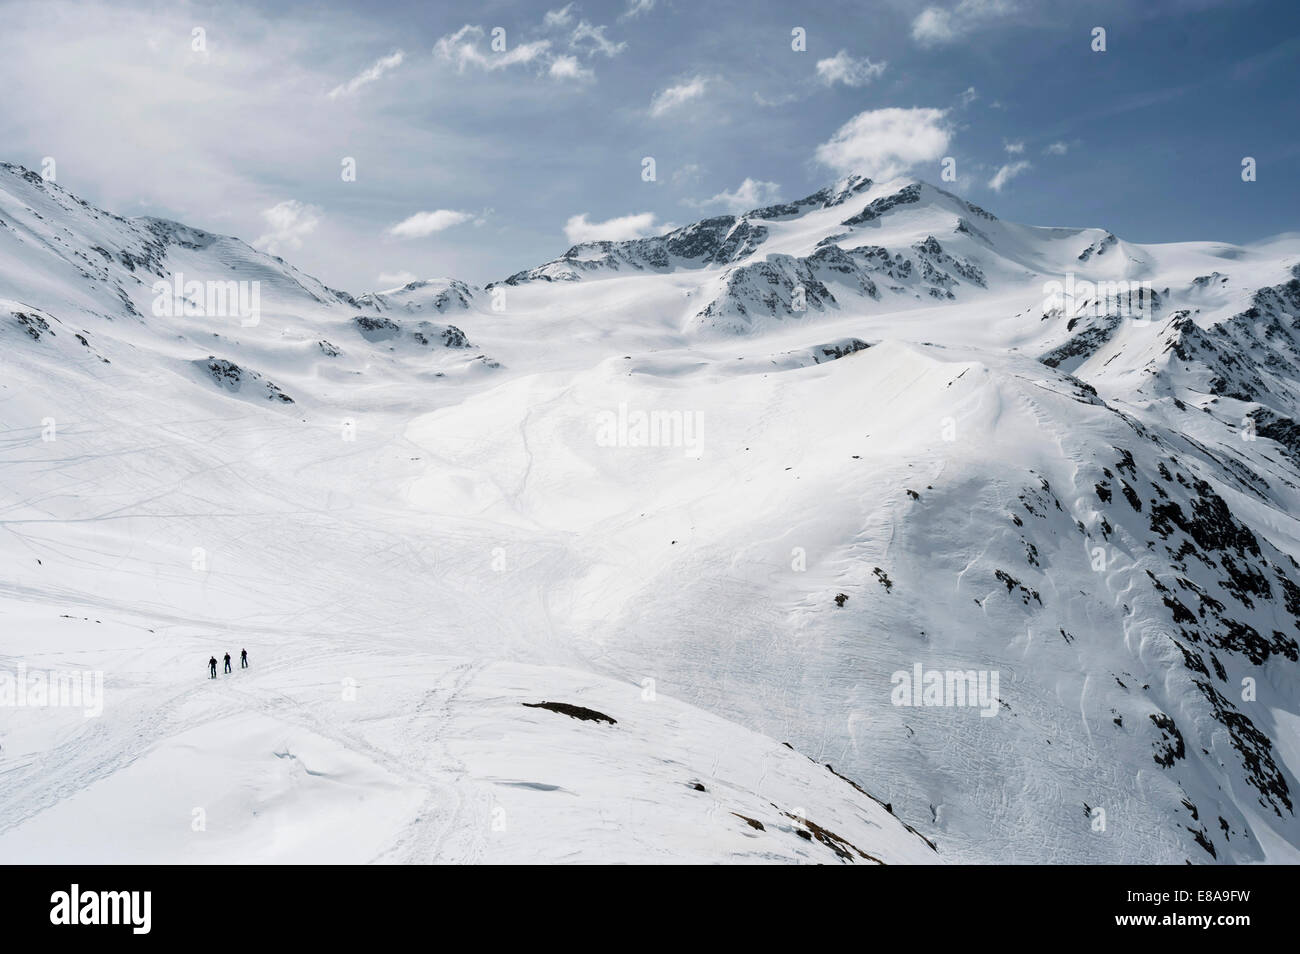 High mountains Alps landscape skiers snow - Stock Image